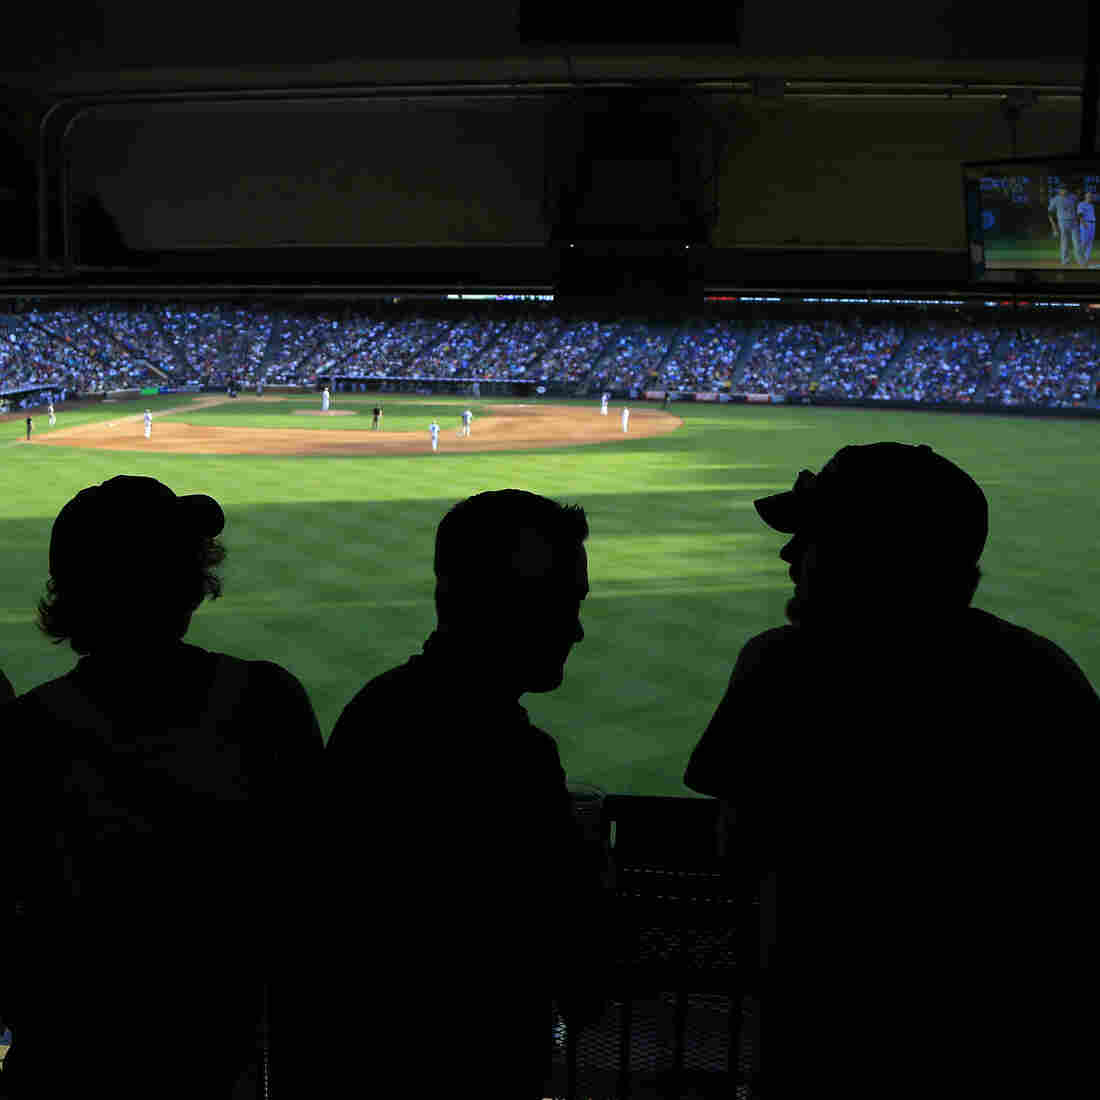 Insurance Pitch To Young Adults Started In Fenway Park